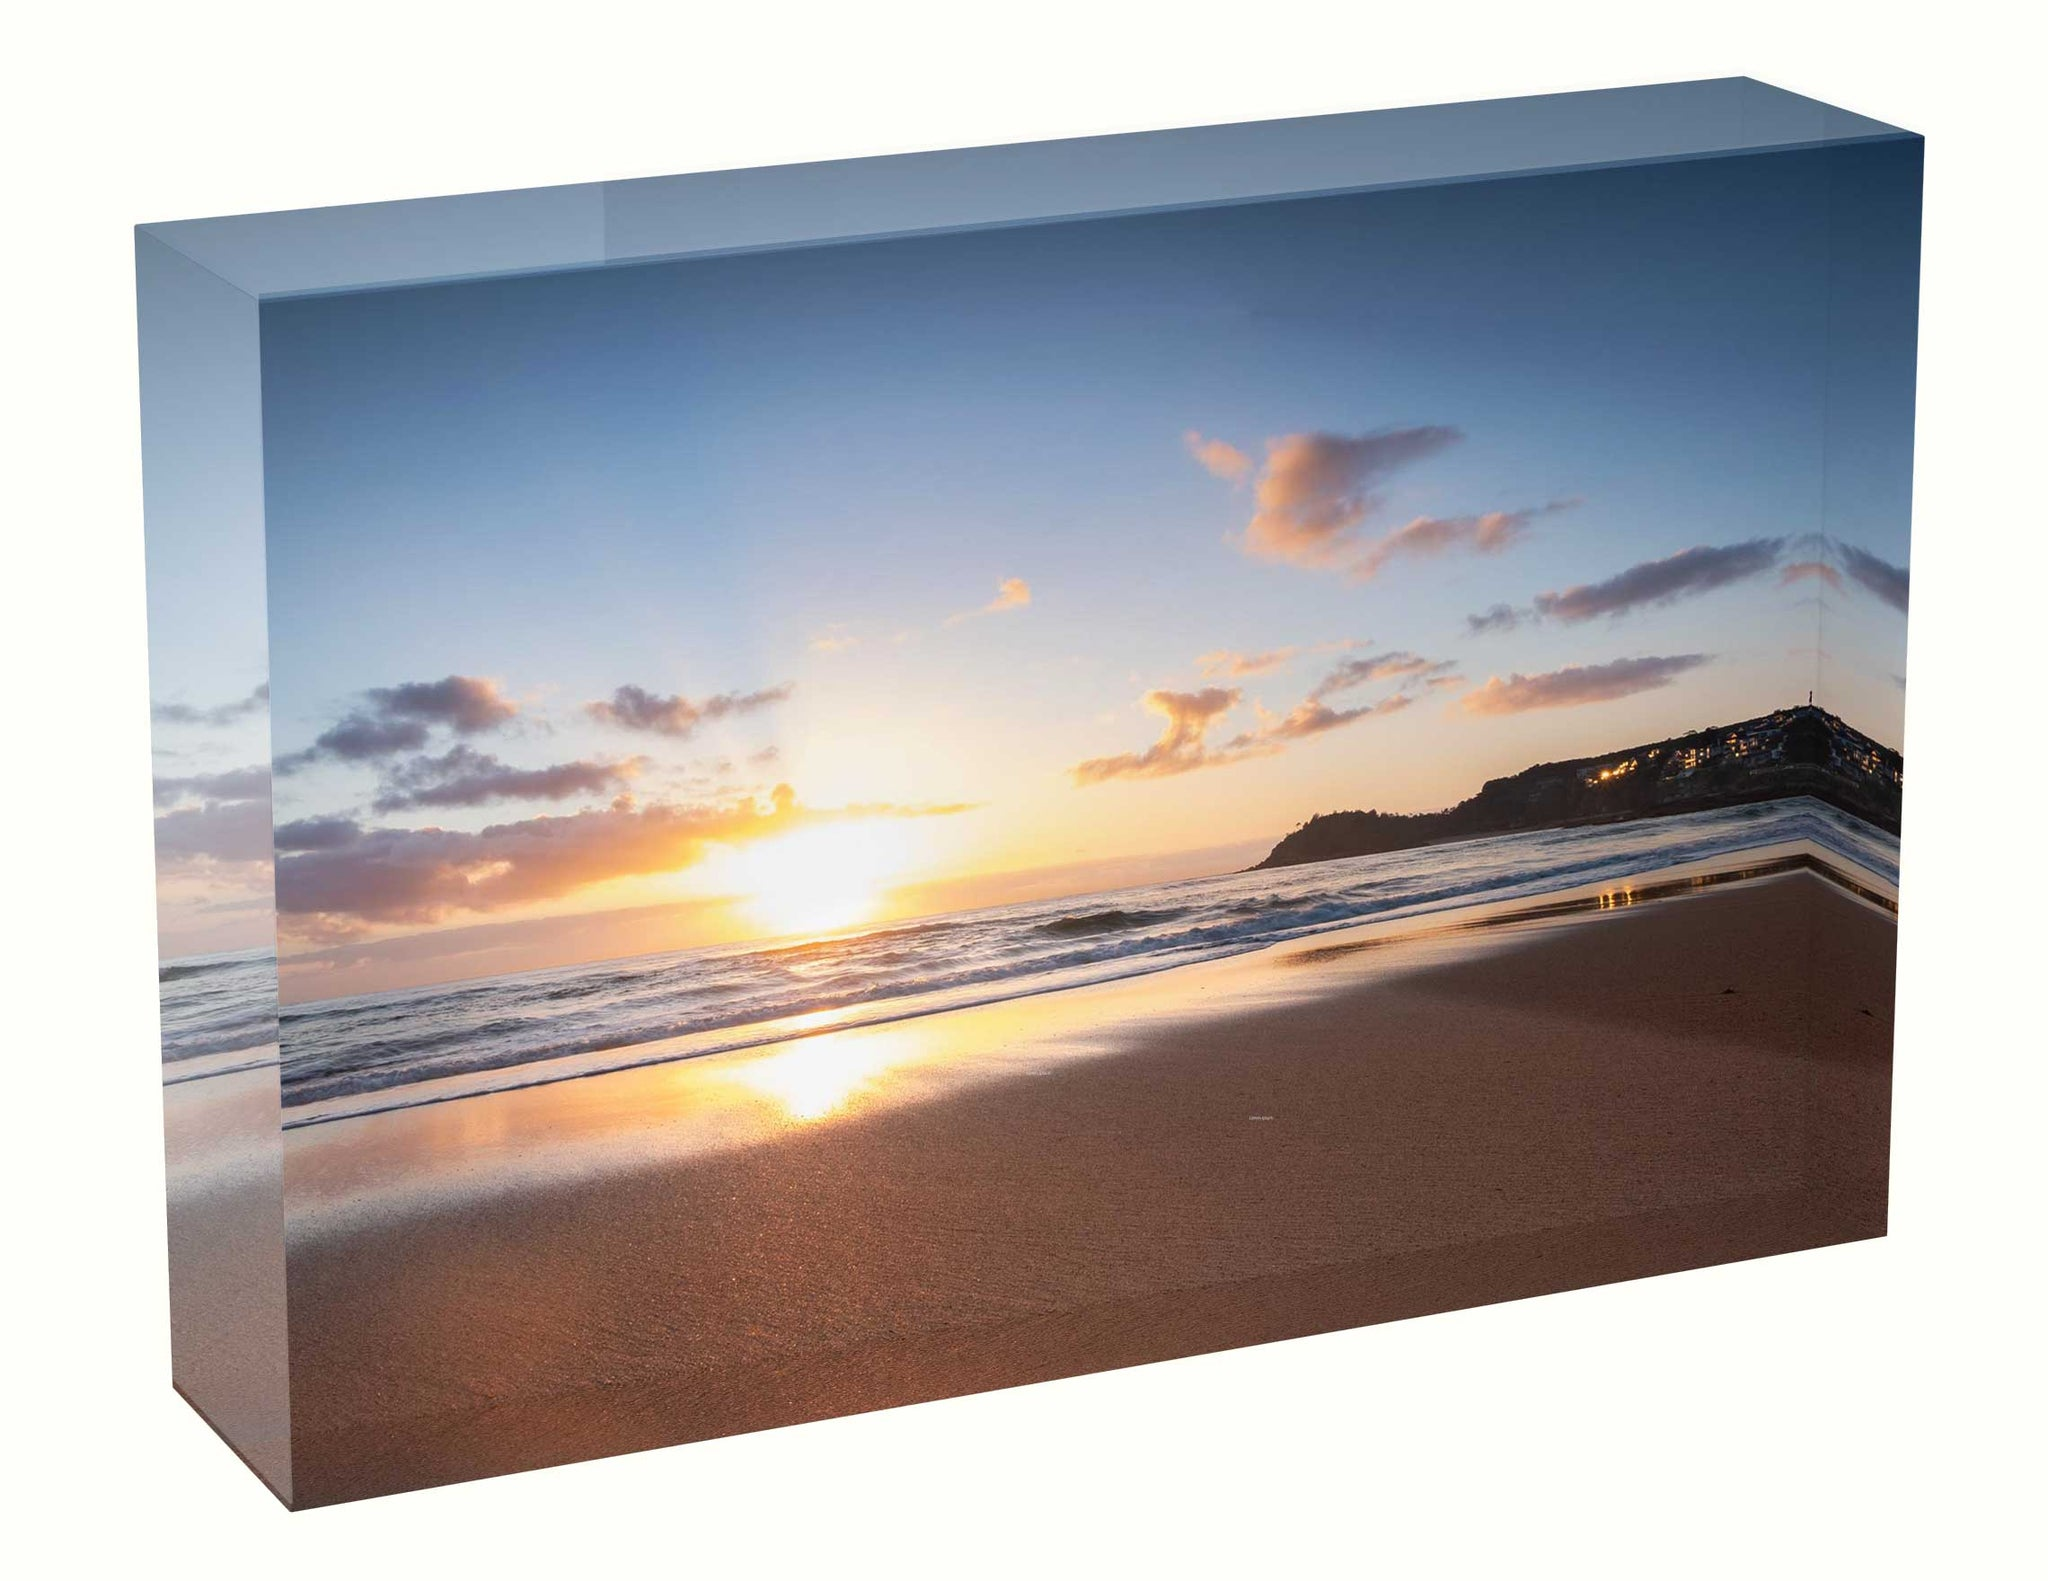 Acrylic block sunrise photo 7th September 2020 Manly beach, Sydney